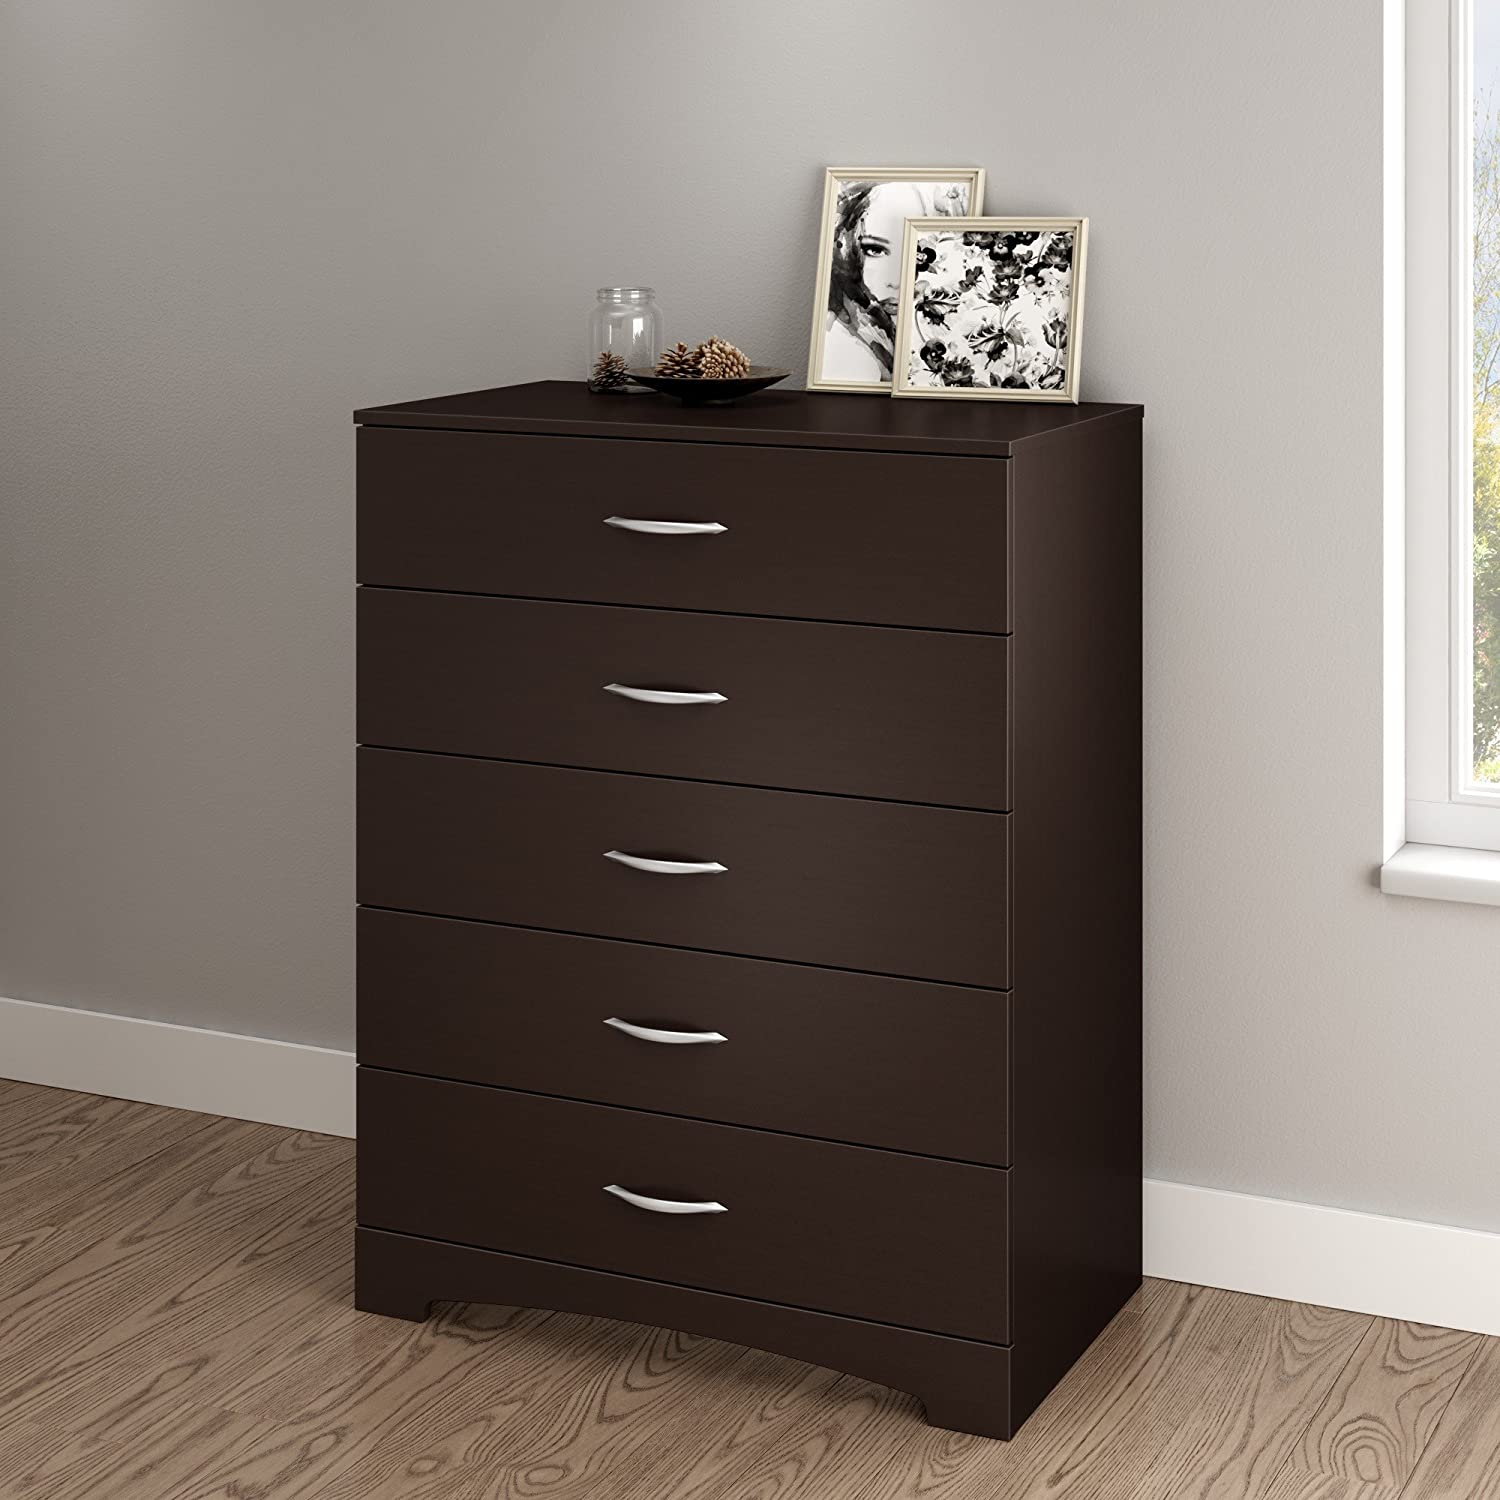 Top 10 Best Bedrooms Dressers (2020 Reviews & Buying Guide) 10